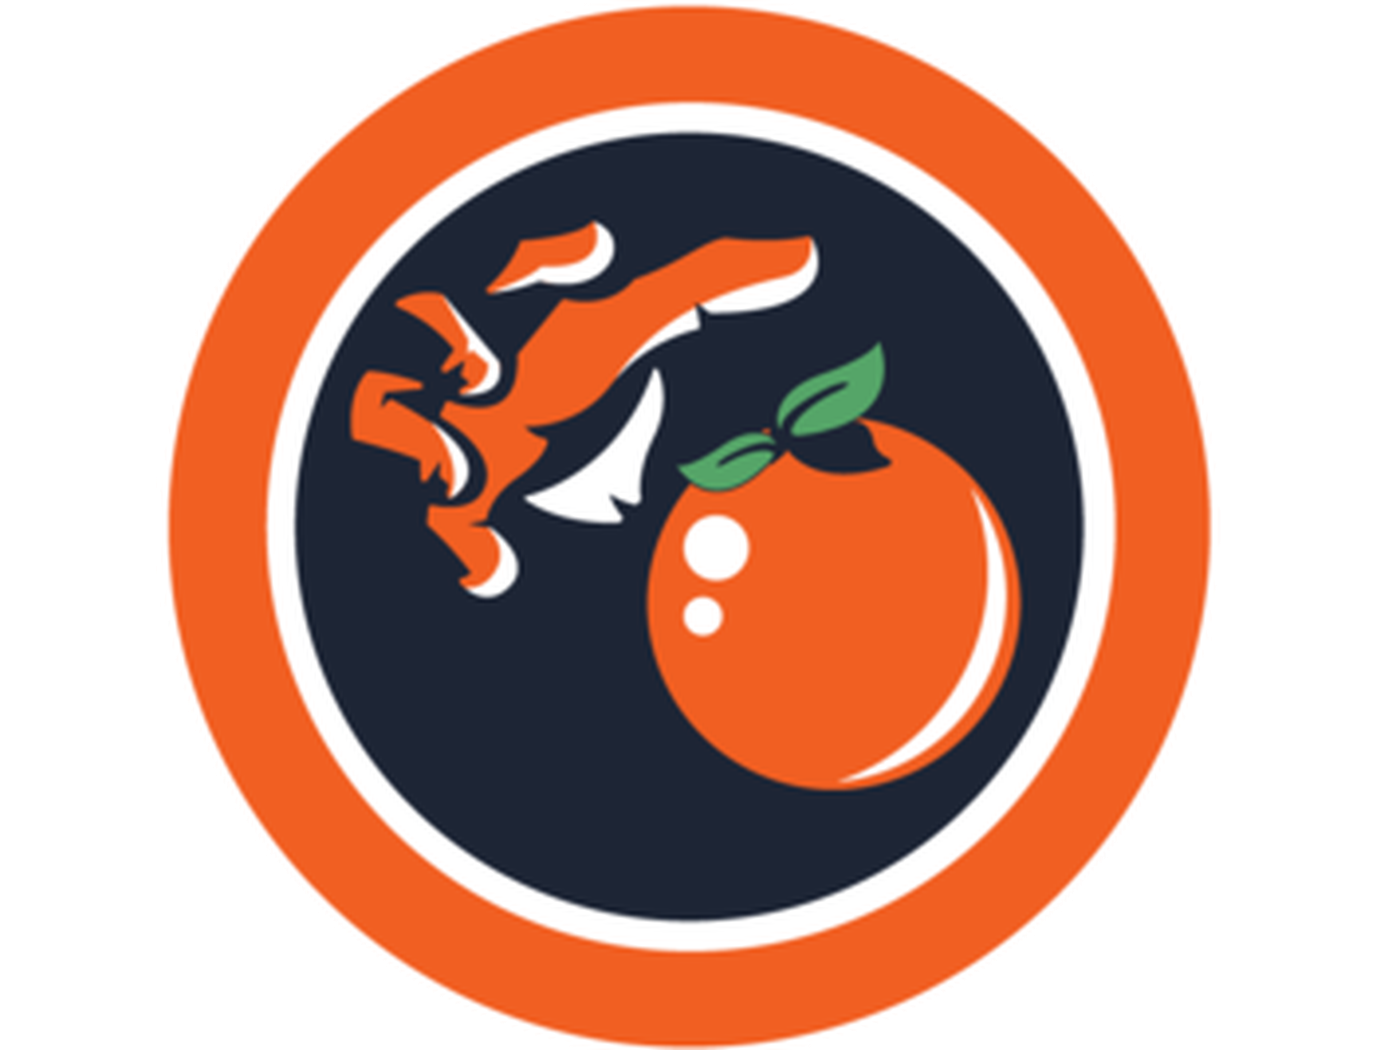 What Is Your Favorite Syracuse Logo Troy Nunes Is An Absolute